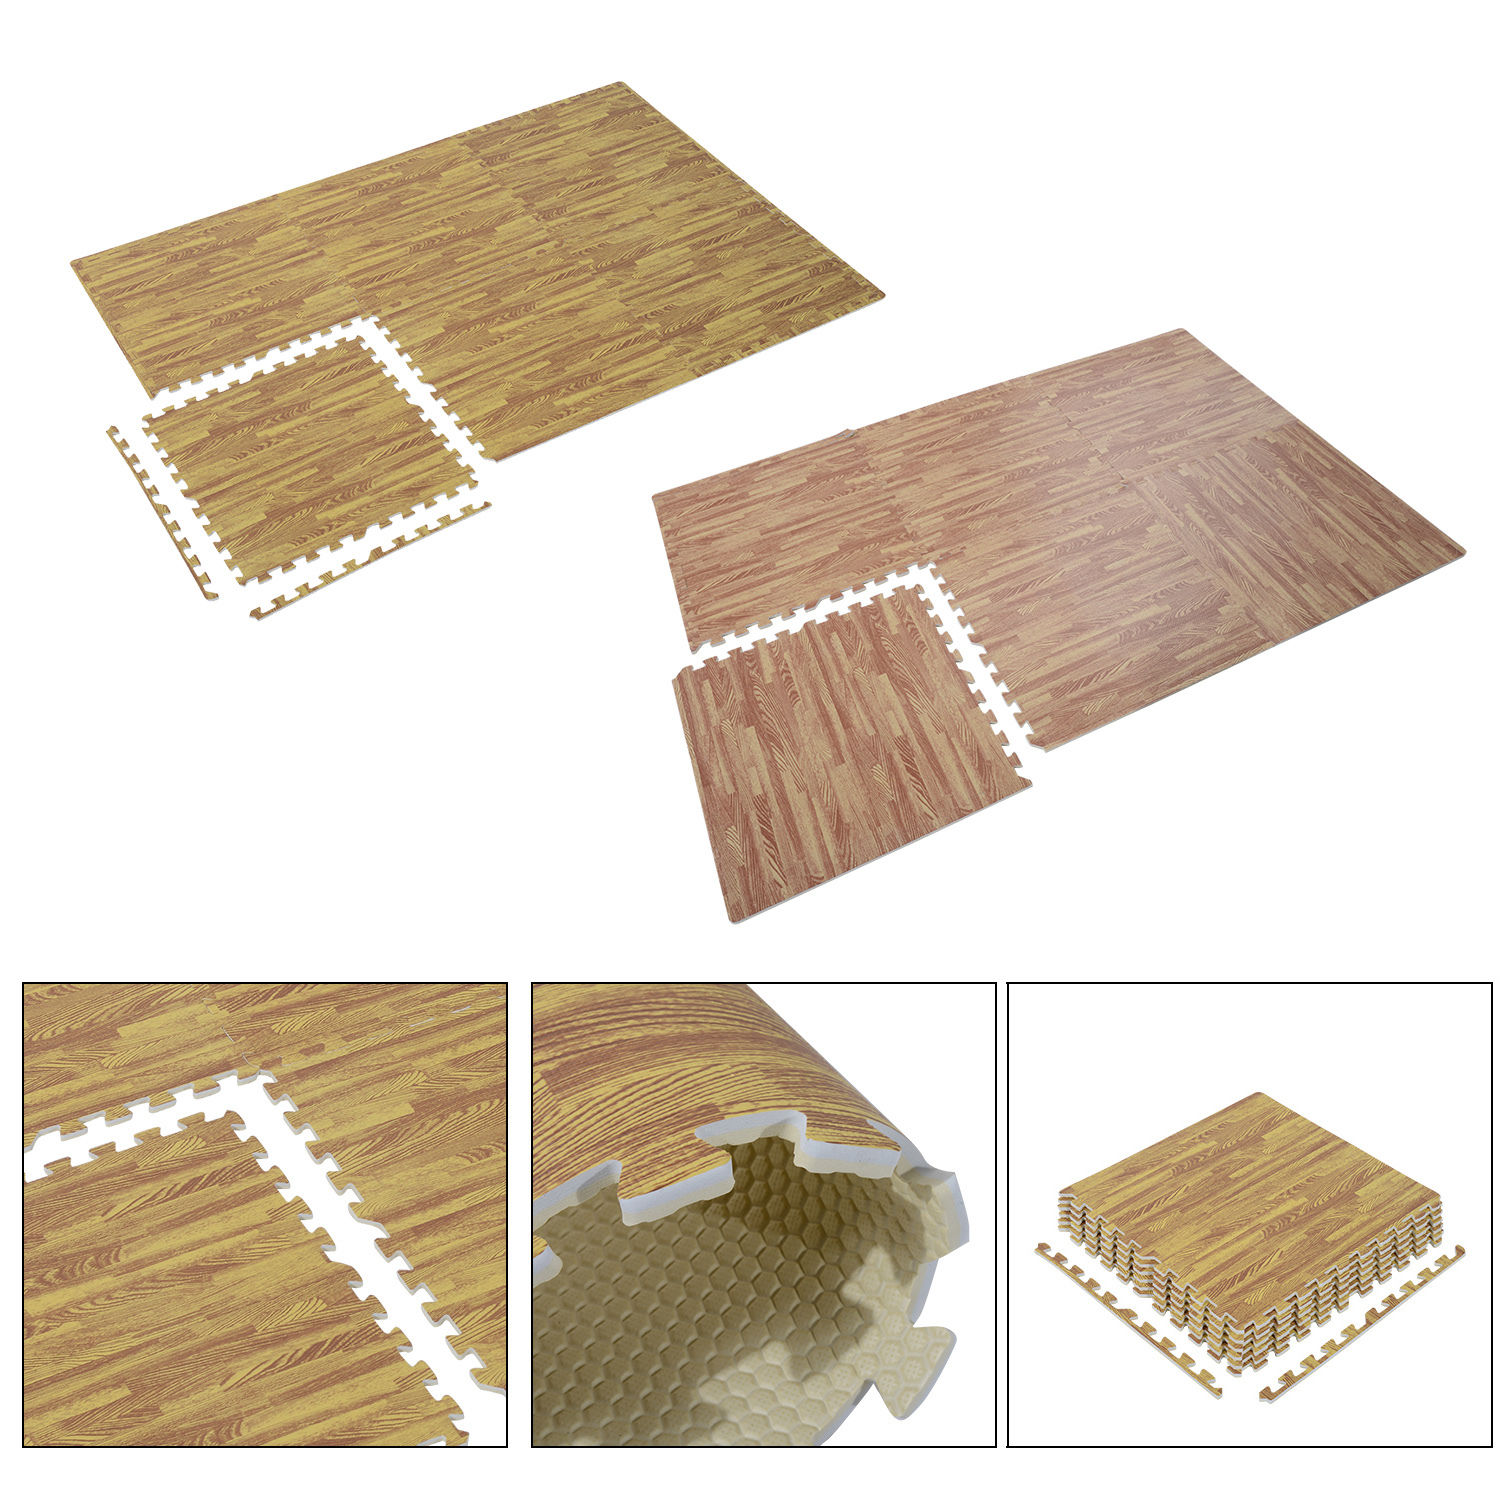 24 Sqft Interlocking Eva Foam Floor Puzzle Tiles Mats Wood Grain